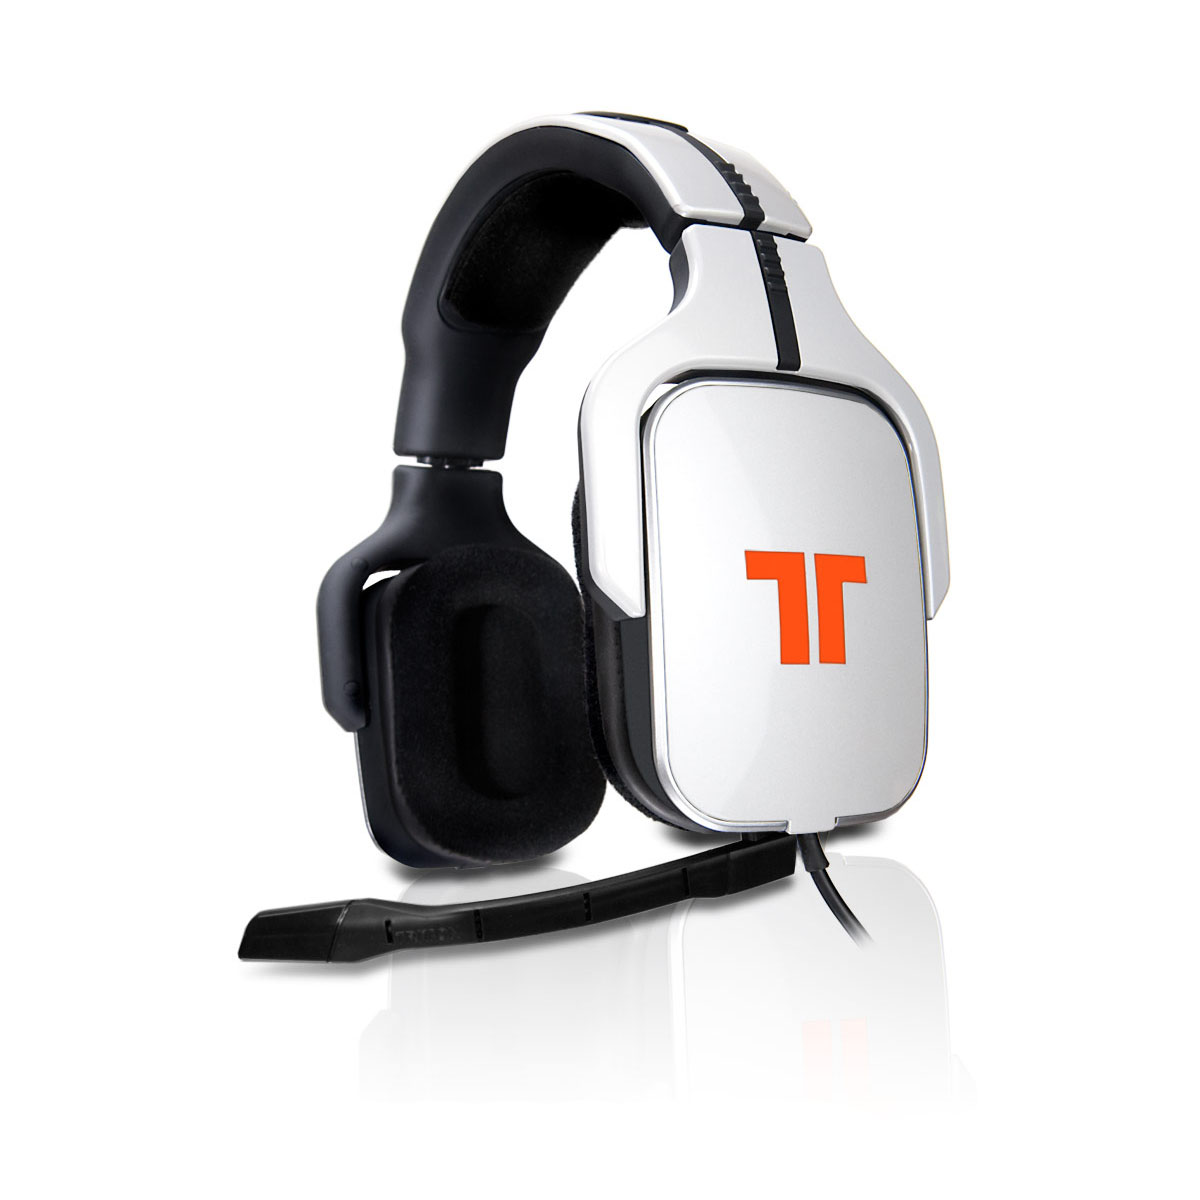 tritton ax 720 pc mac ps3 xbox 360 micro casque gamer tritton sur. Black Bedroom Furniture Sets. Home Design Ideas